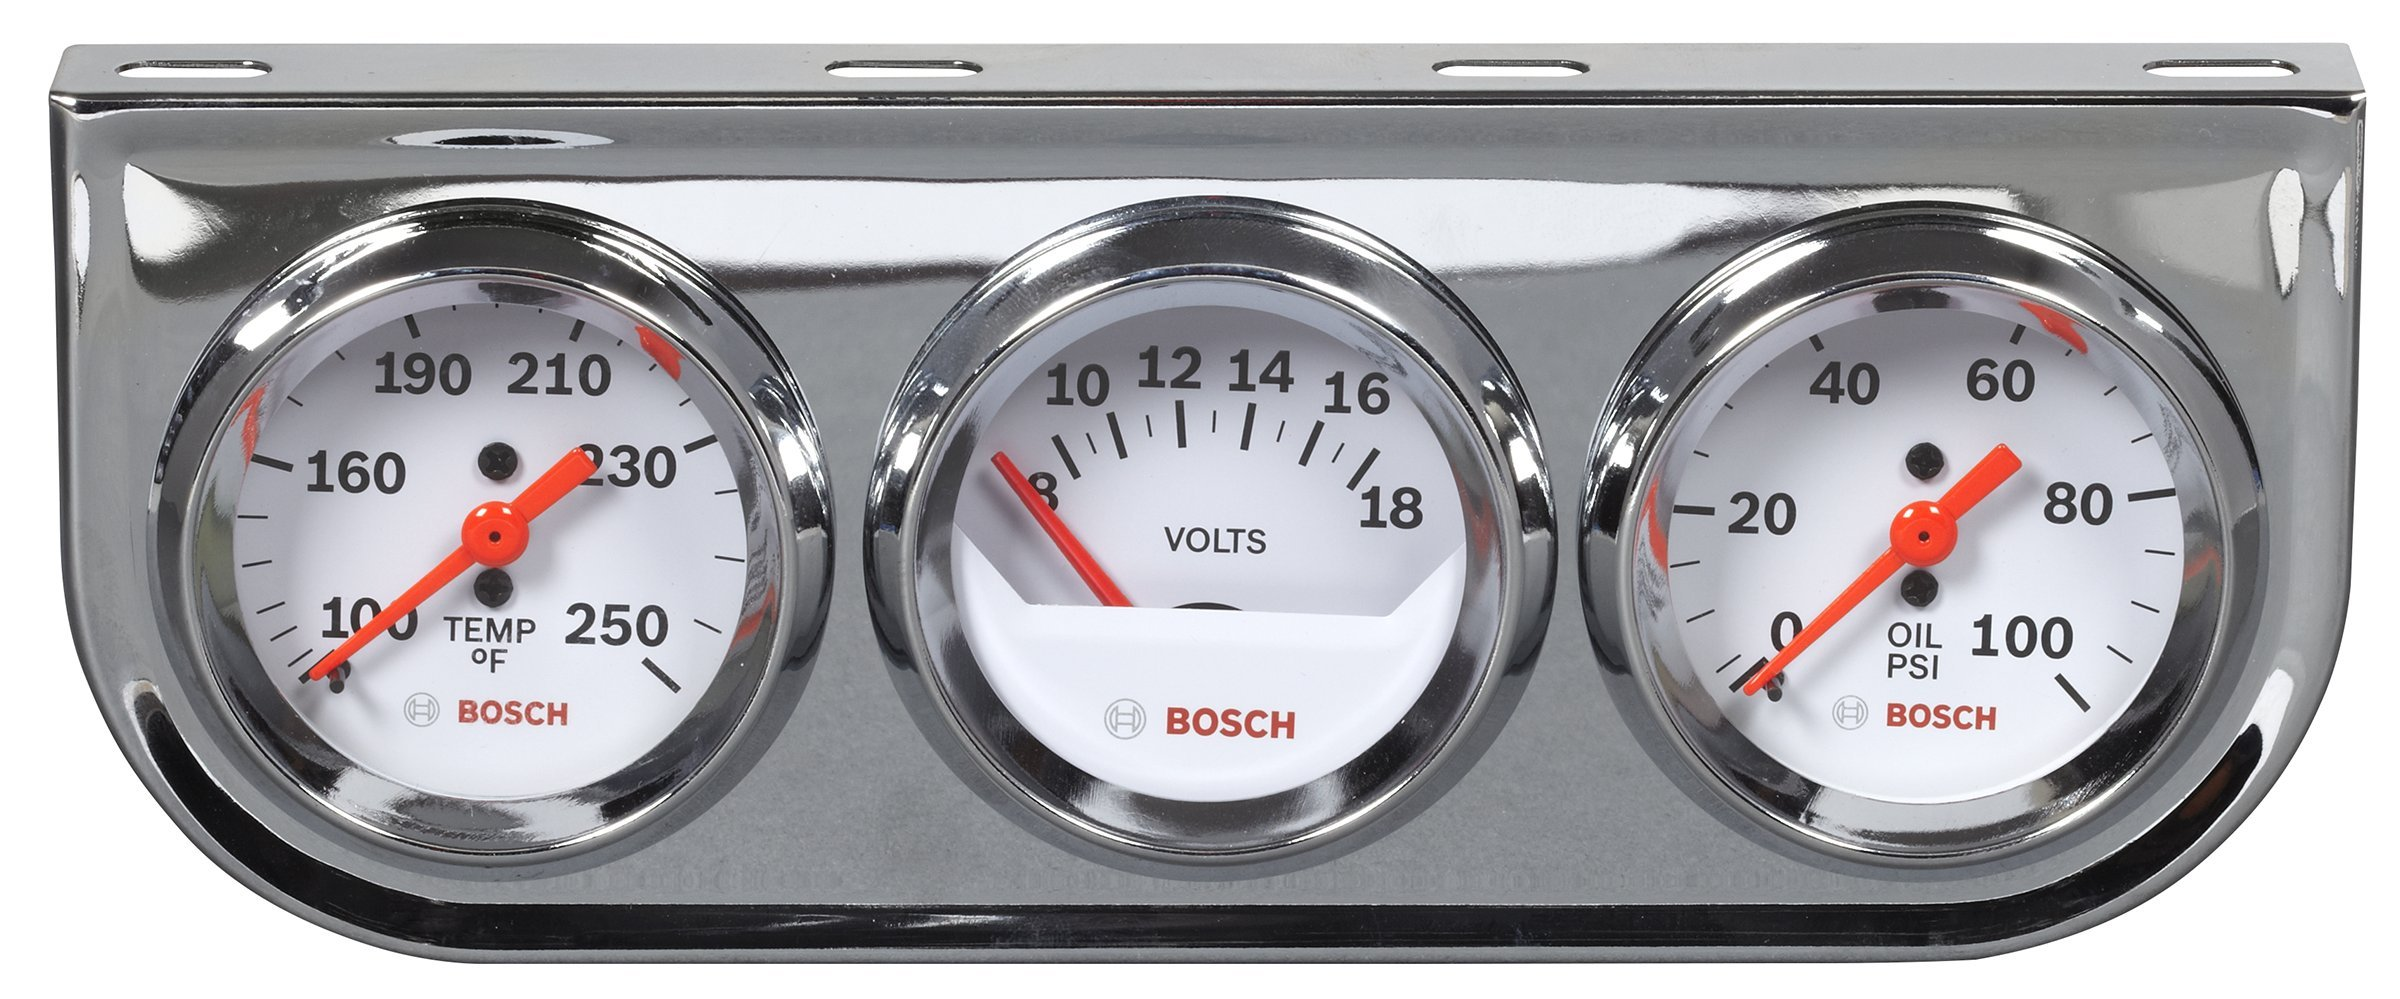 Bosch SP0F000046 Style Line 2'' Triple Gauge Kit (White Dial Face, Chrome Bezel) by Bosch Automotive